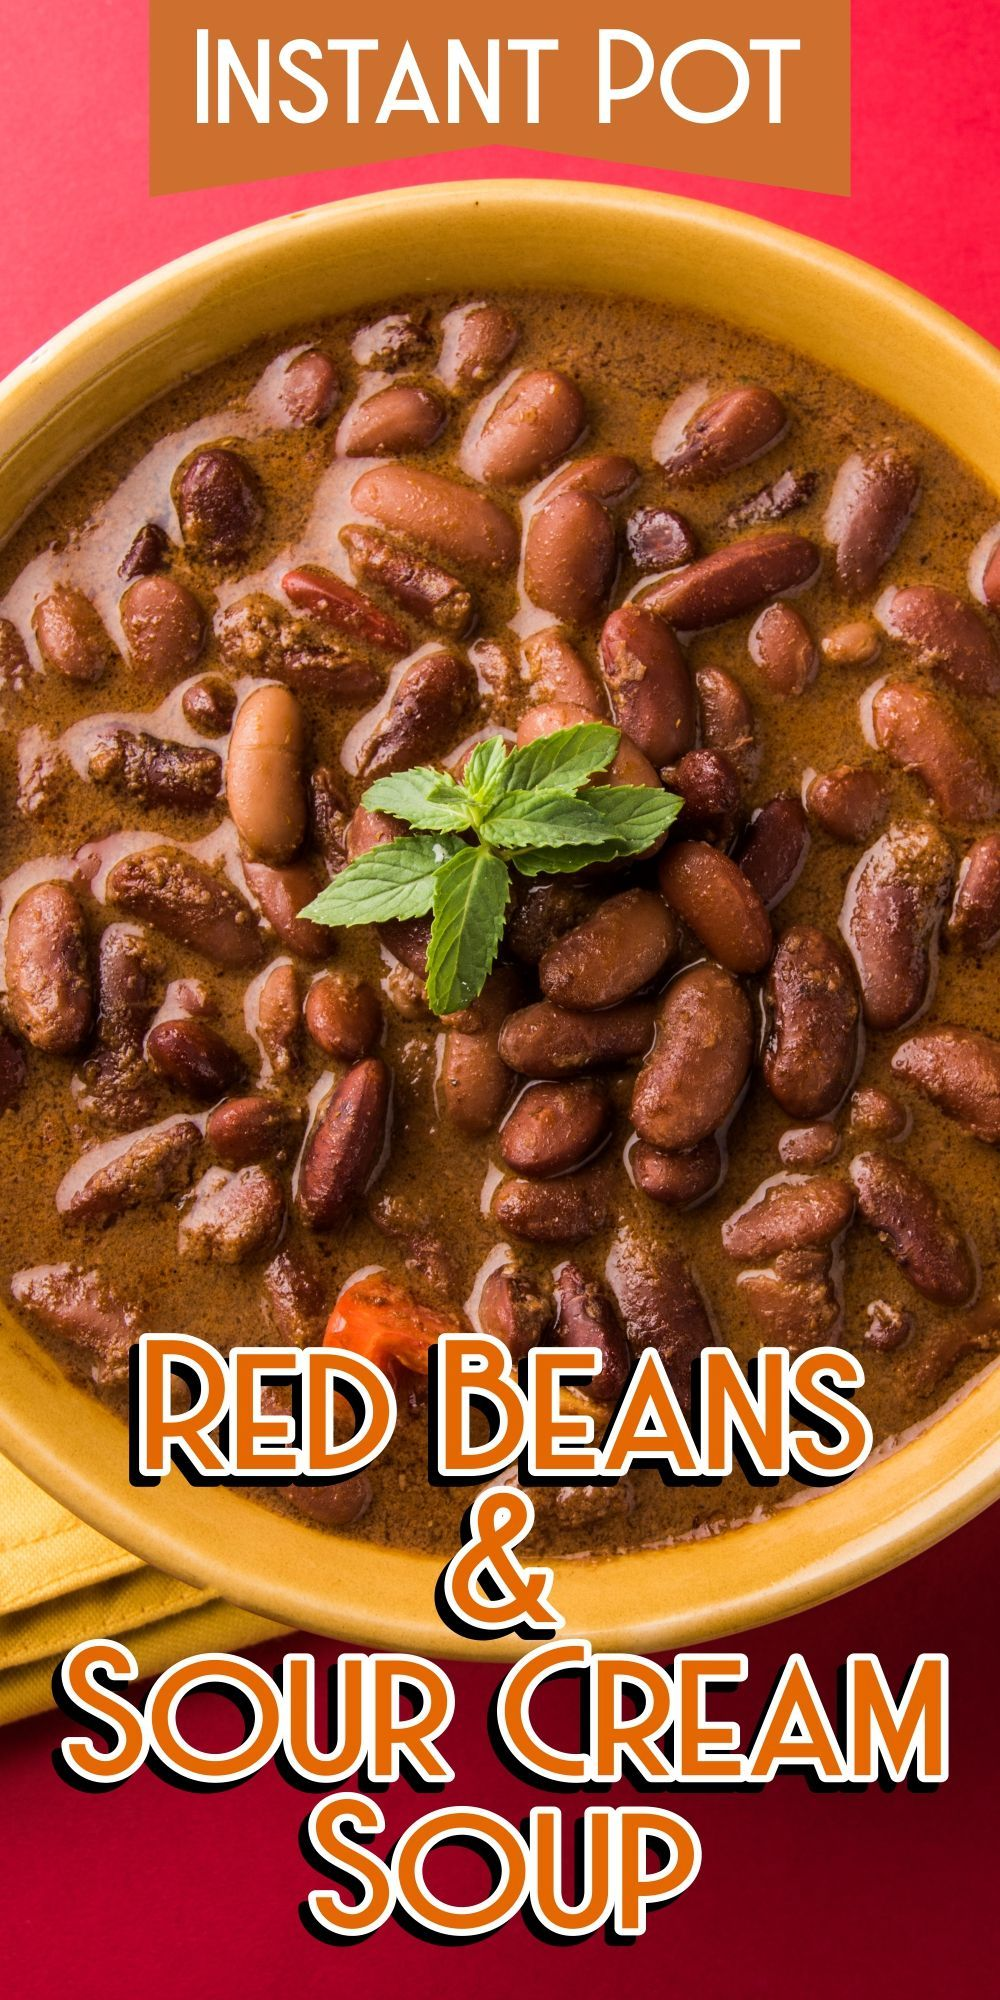 Instant pot red beans sour cream soup recipe in 2020